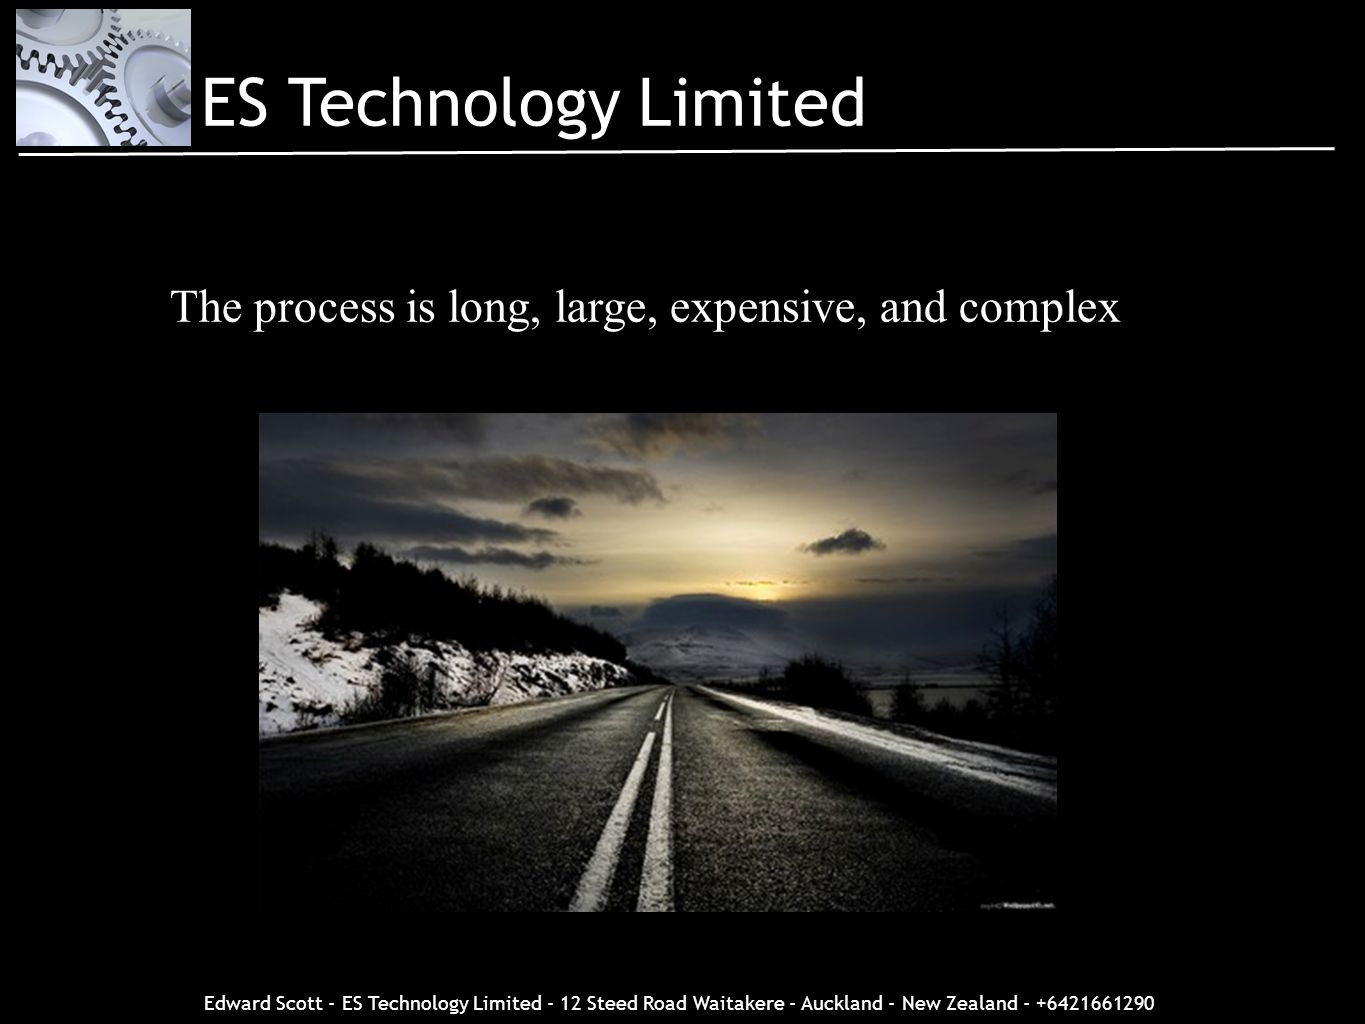 Edward Scott - ES Technology Limited - 12 Steed Road Waitakere - Auckland - New Zealand - +6421661290 The process is long, large, expensive, and compl